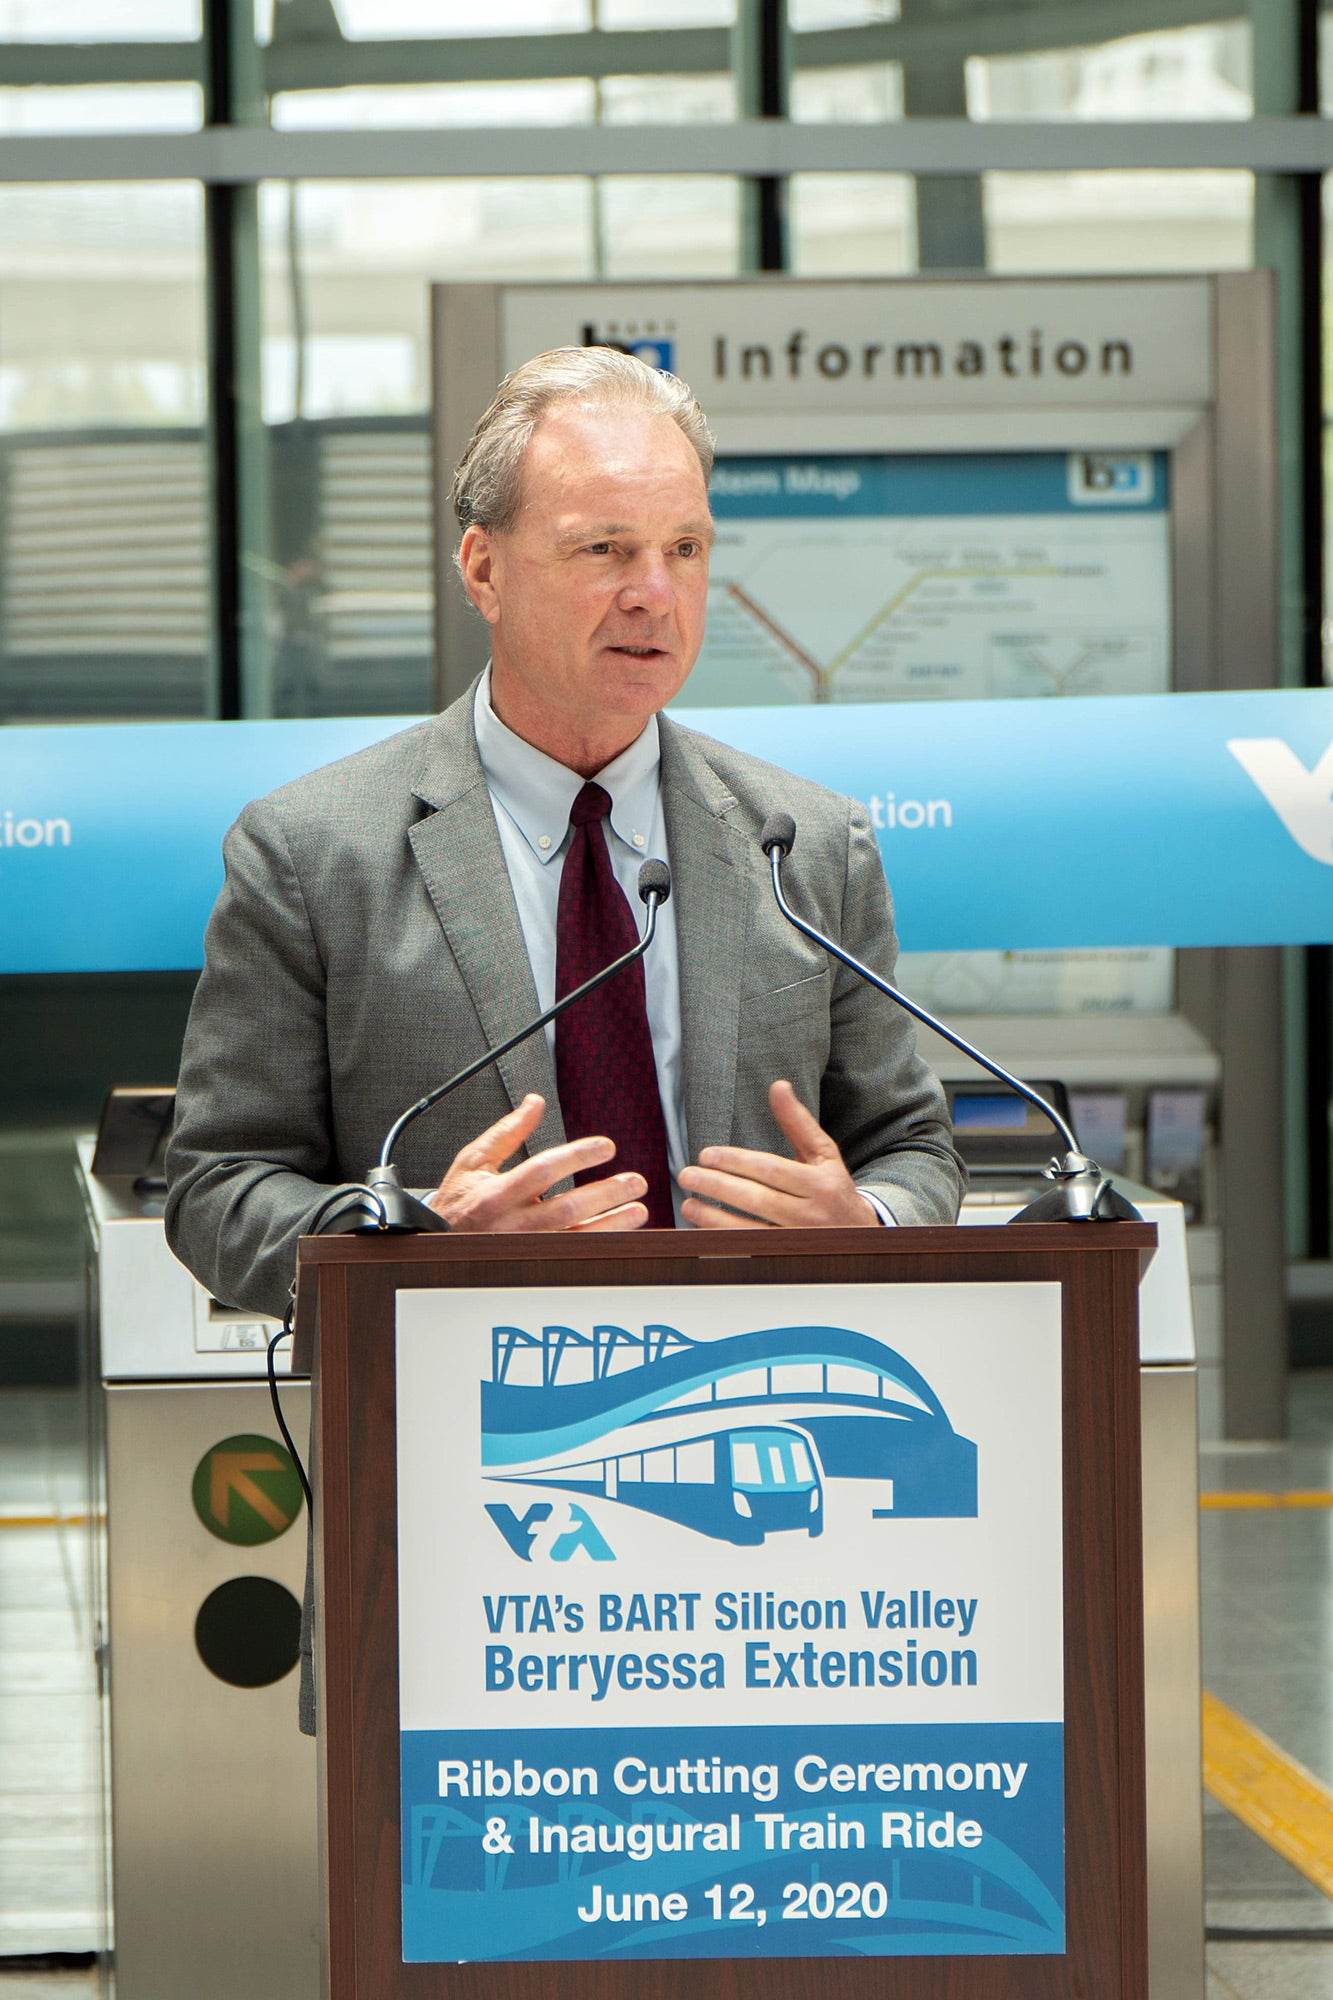 Santa Clara County Board of Supervisors President and MTC Commissioner Dave Cortese. Photo: Santa Clara Valley Transportation Authority